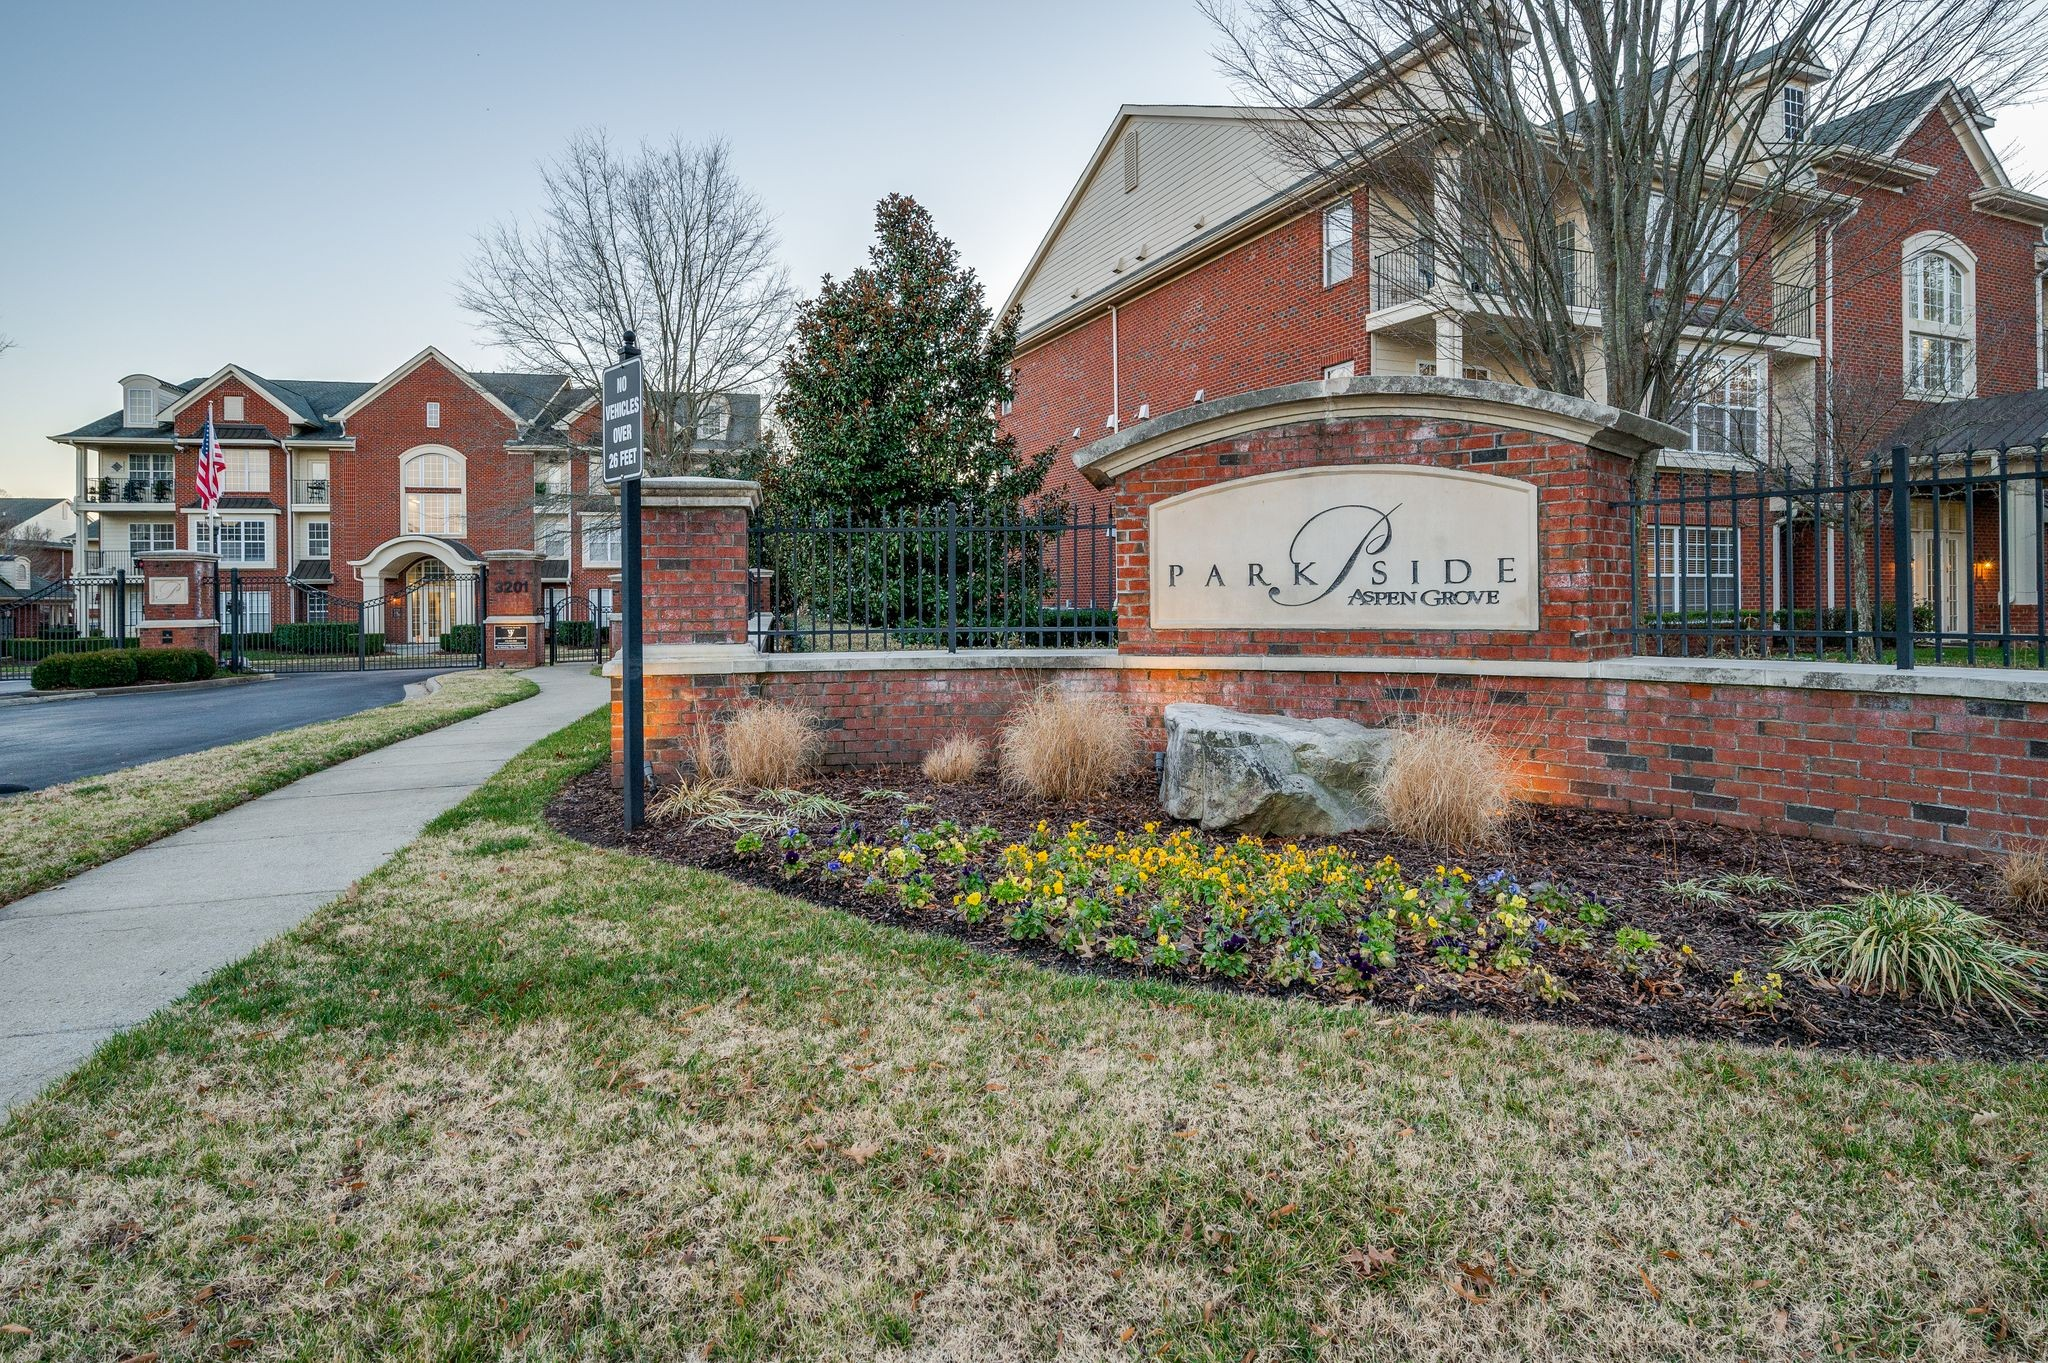 Here is your chance for a high end condo in the heart of Cool Springs. Surrounded by exquisite dining, shopping and entertainment.   Lounge around the pool on your days off and enjoy nature as you course the walking trails. Single story, lower level corner unit. Easy access to I-65. If you desire convenience and walkability, this is your chance.